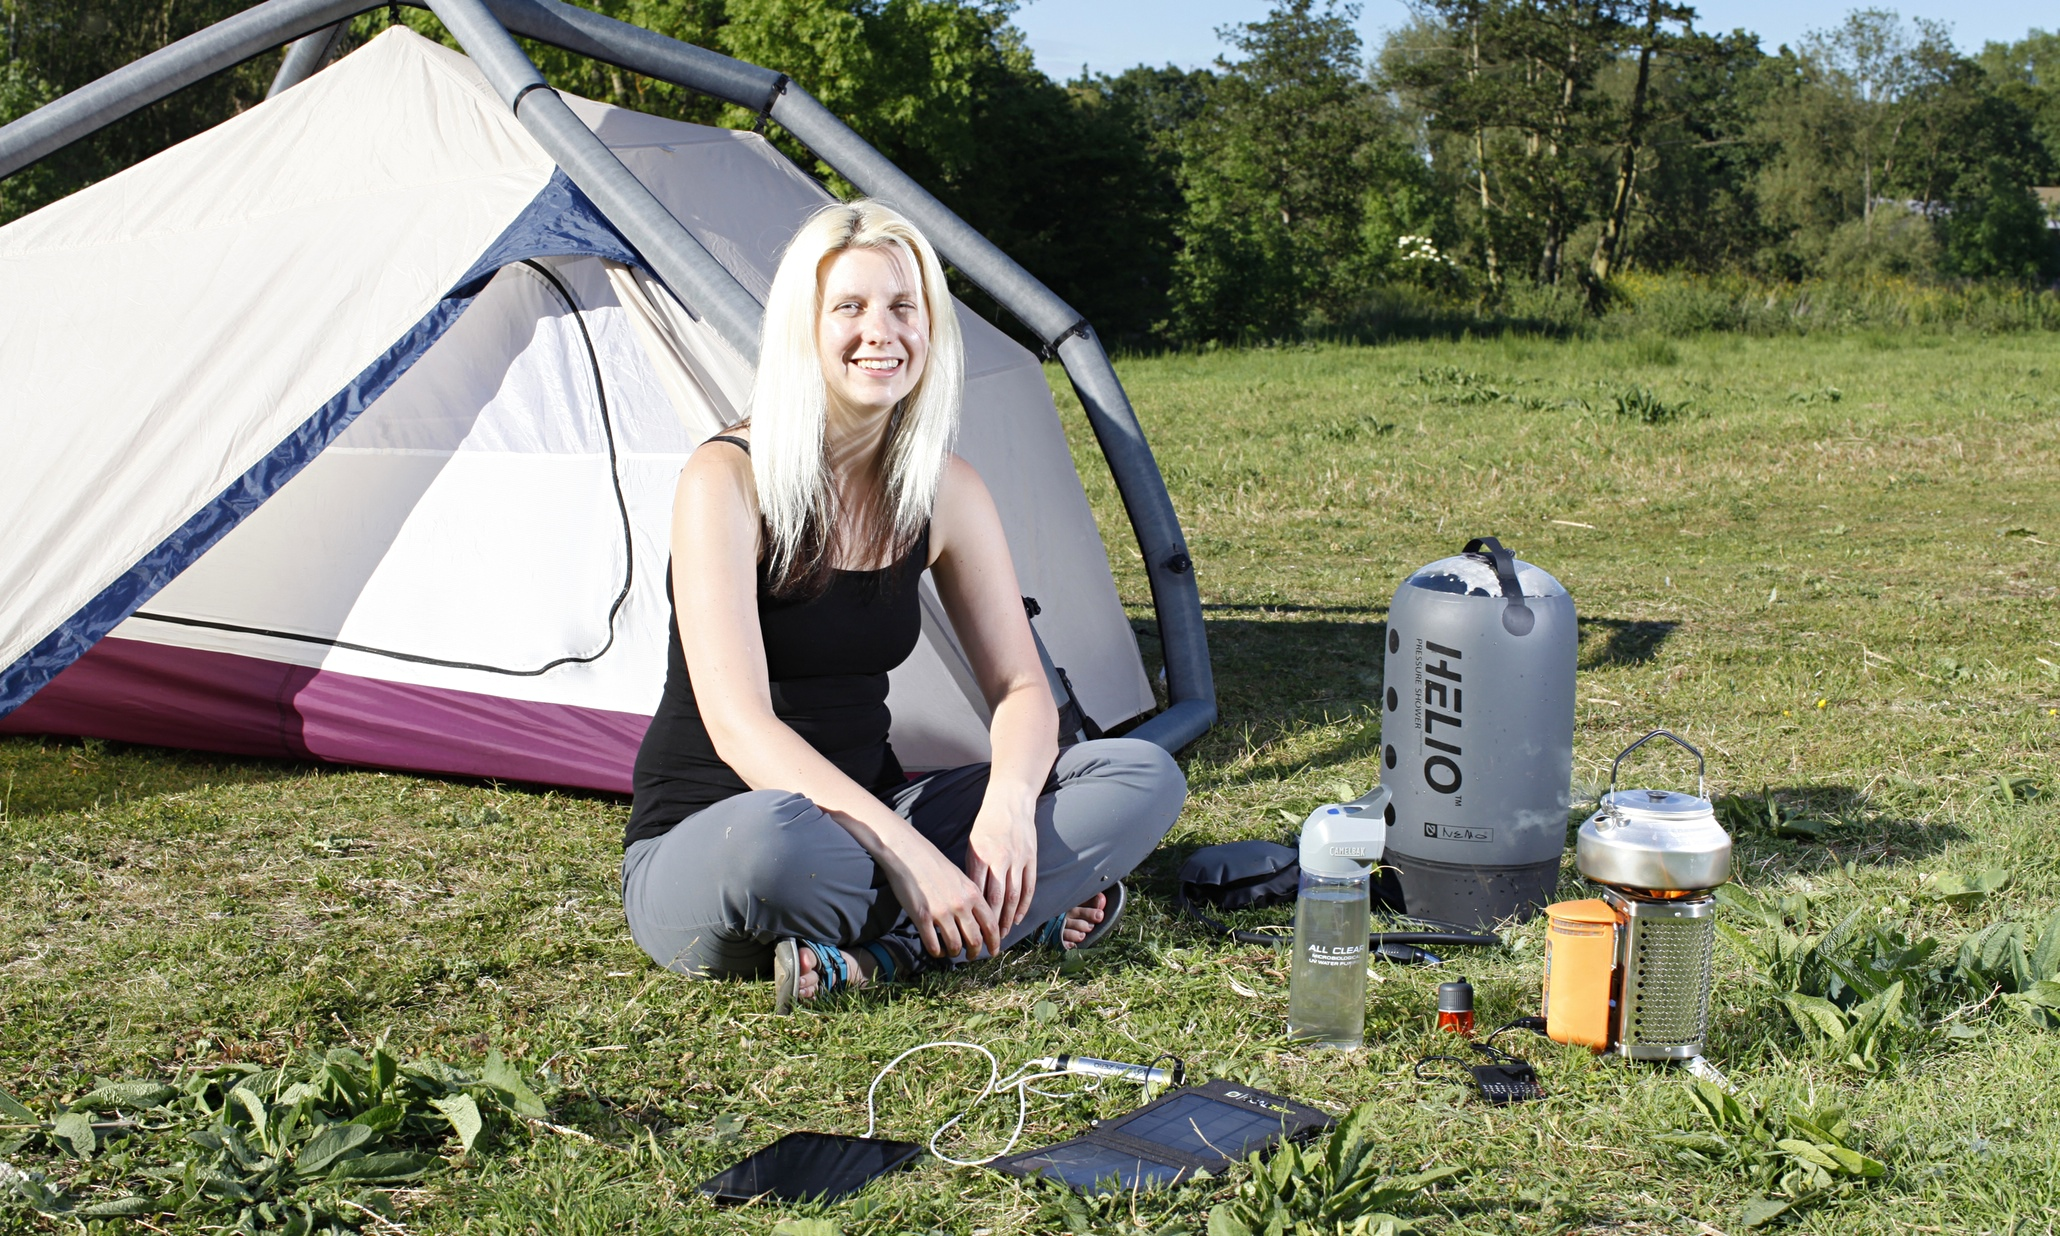 Camping in comfort: from inflatable tents to a stove that ...